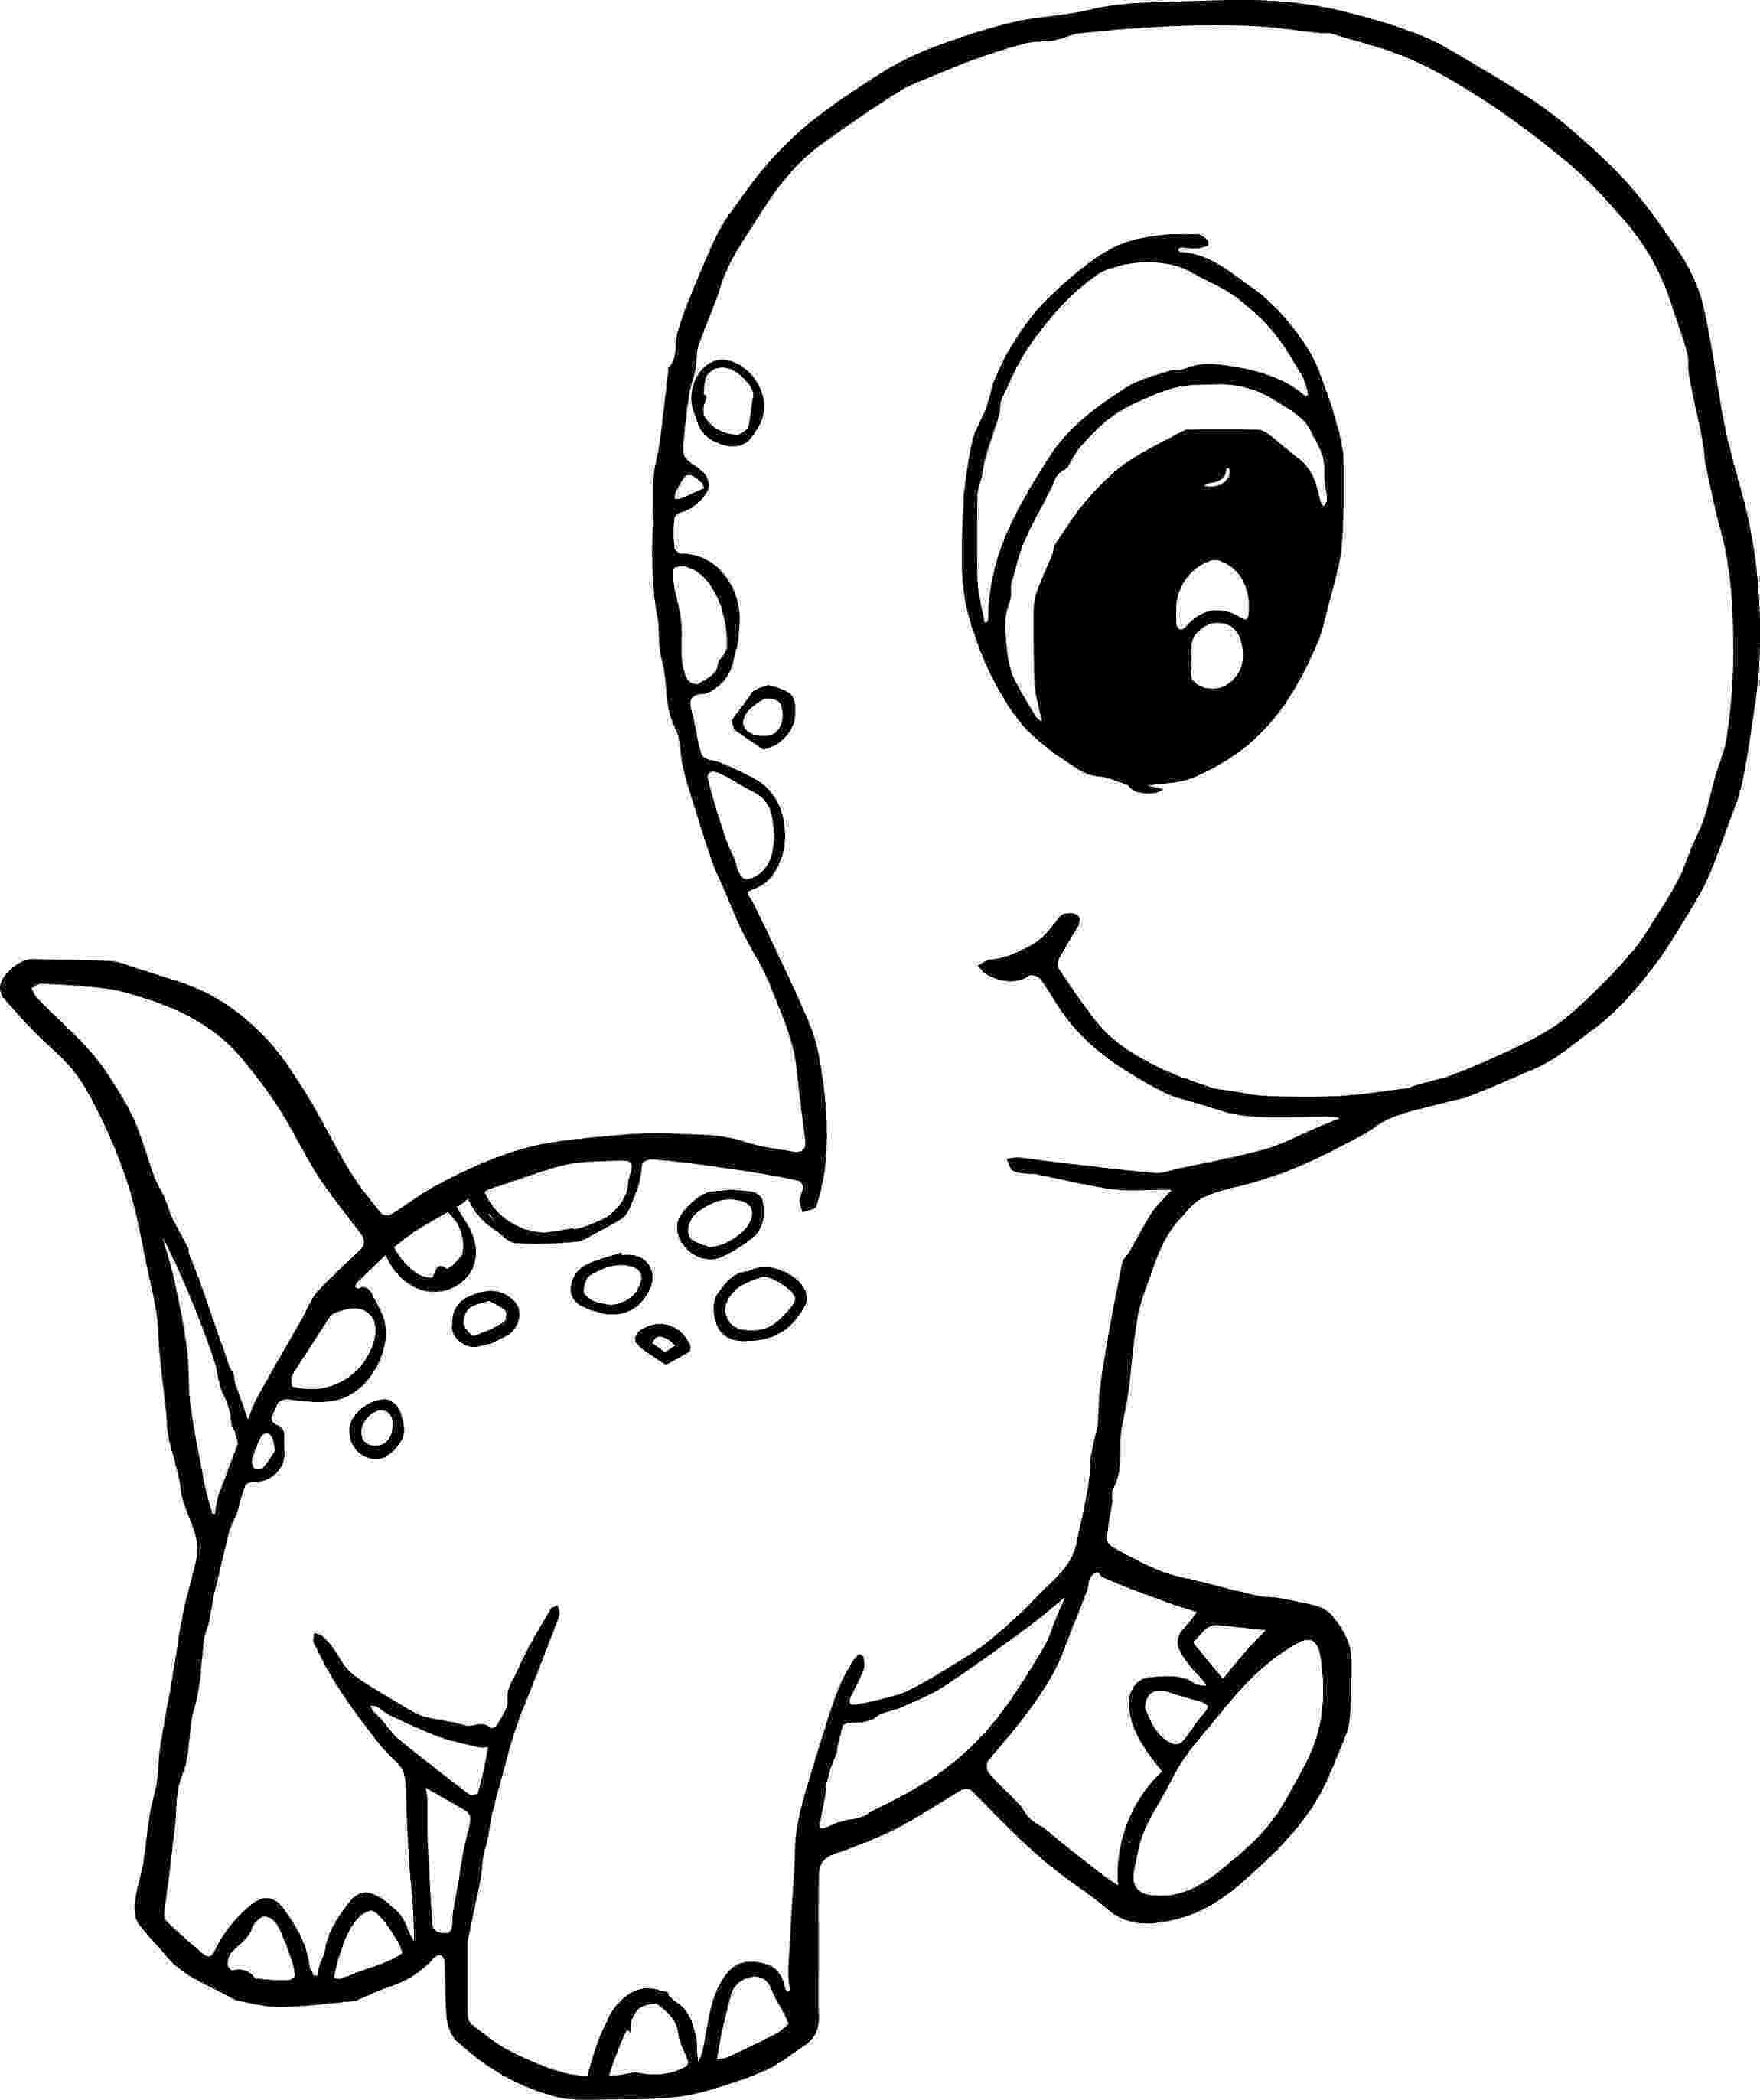 coloring pages of dinosaurs for preschoolers pin by cecilia rose on dinosaurs dinosaur coloring pages dinosaurs for preschoolers pages coloring of